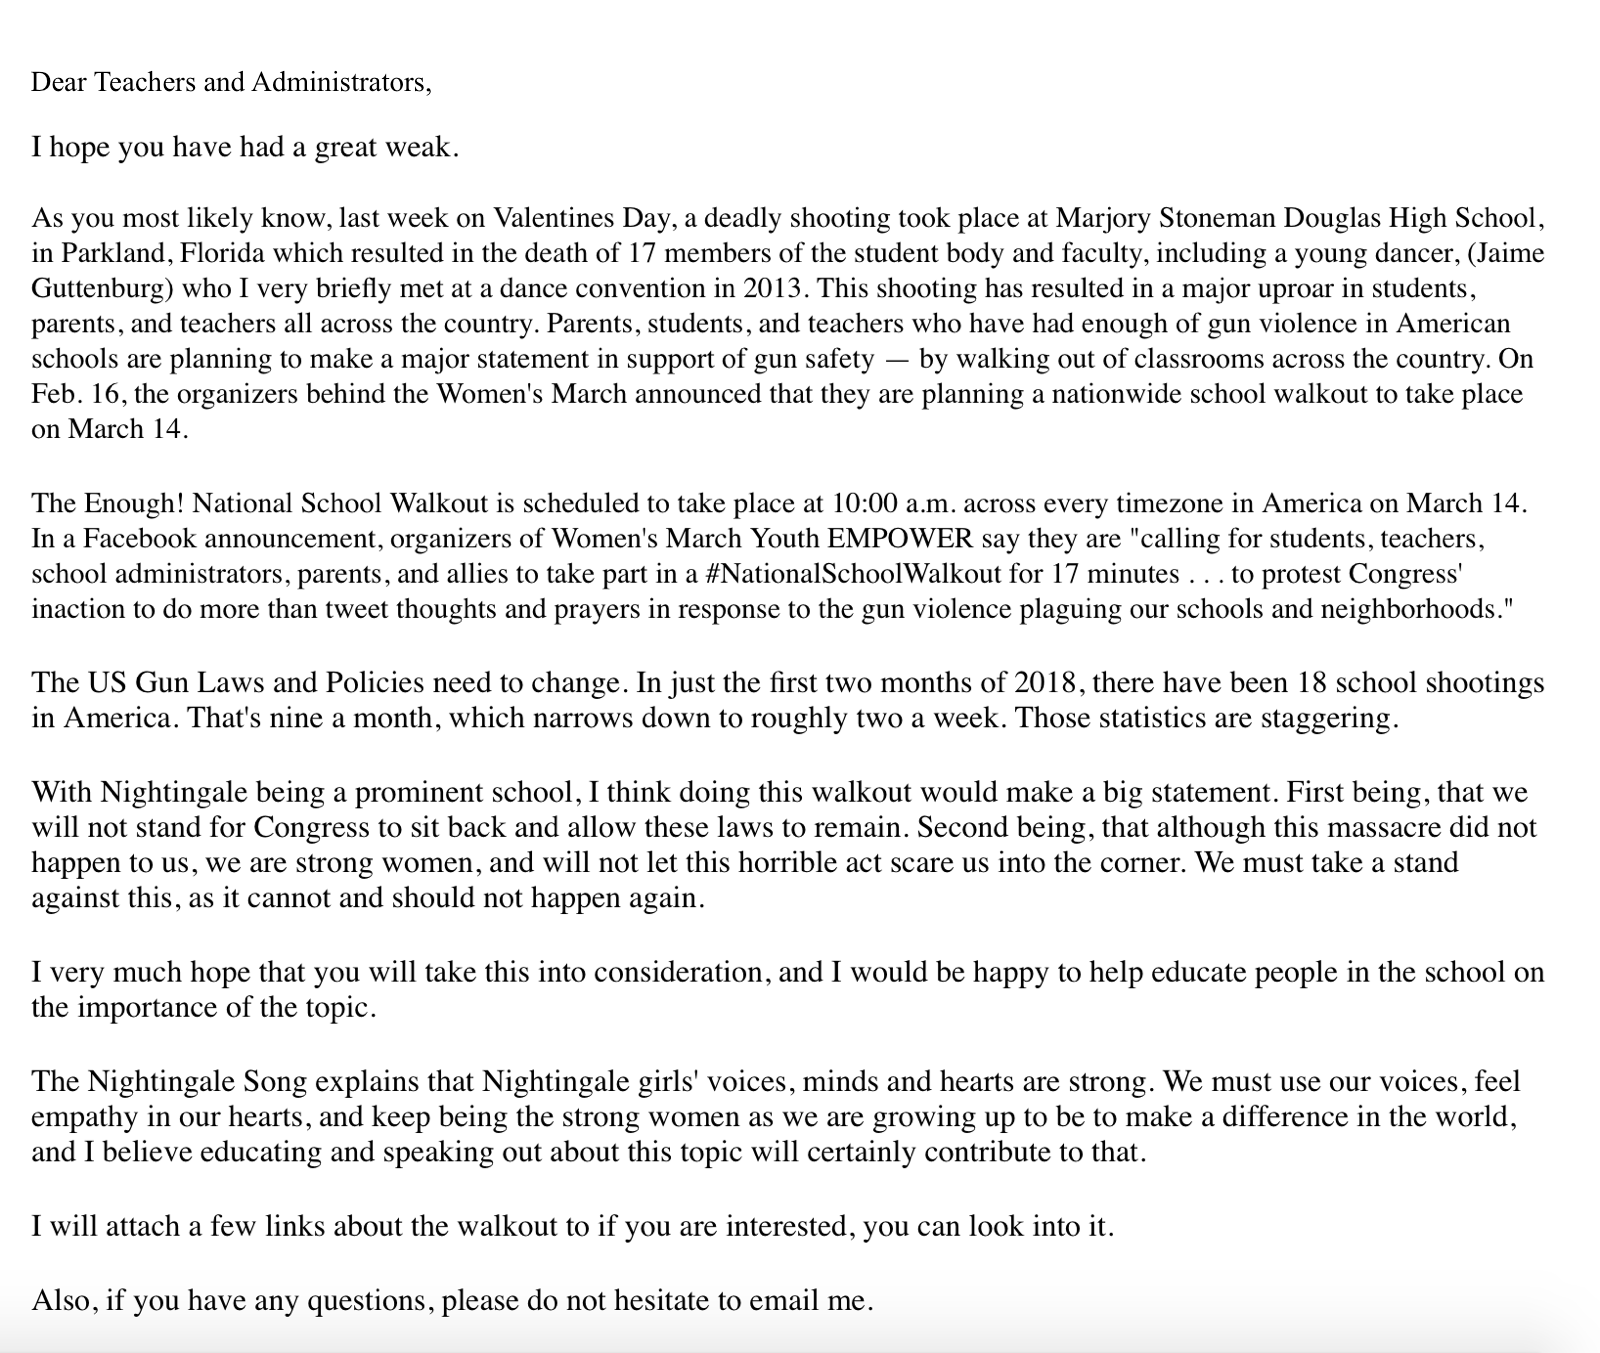 Lizzie_Email_SchoolWalkout (1).png